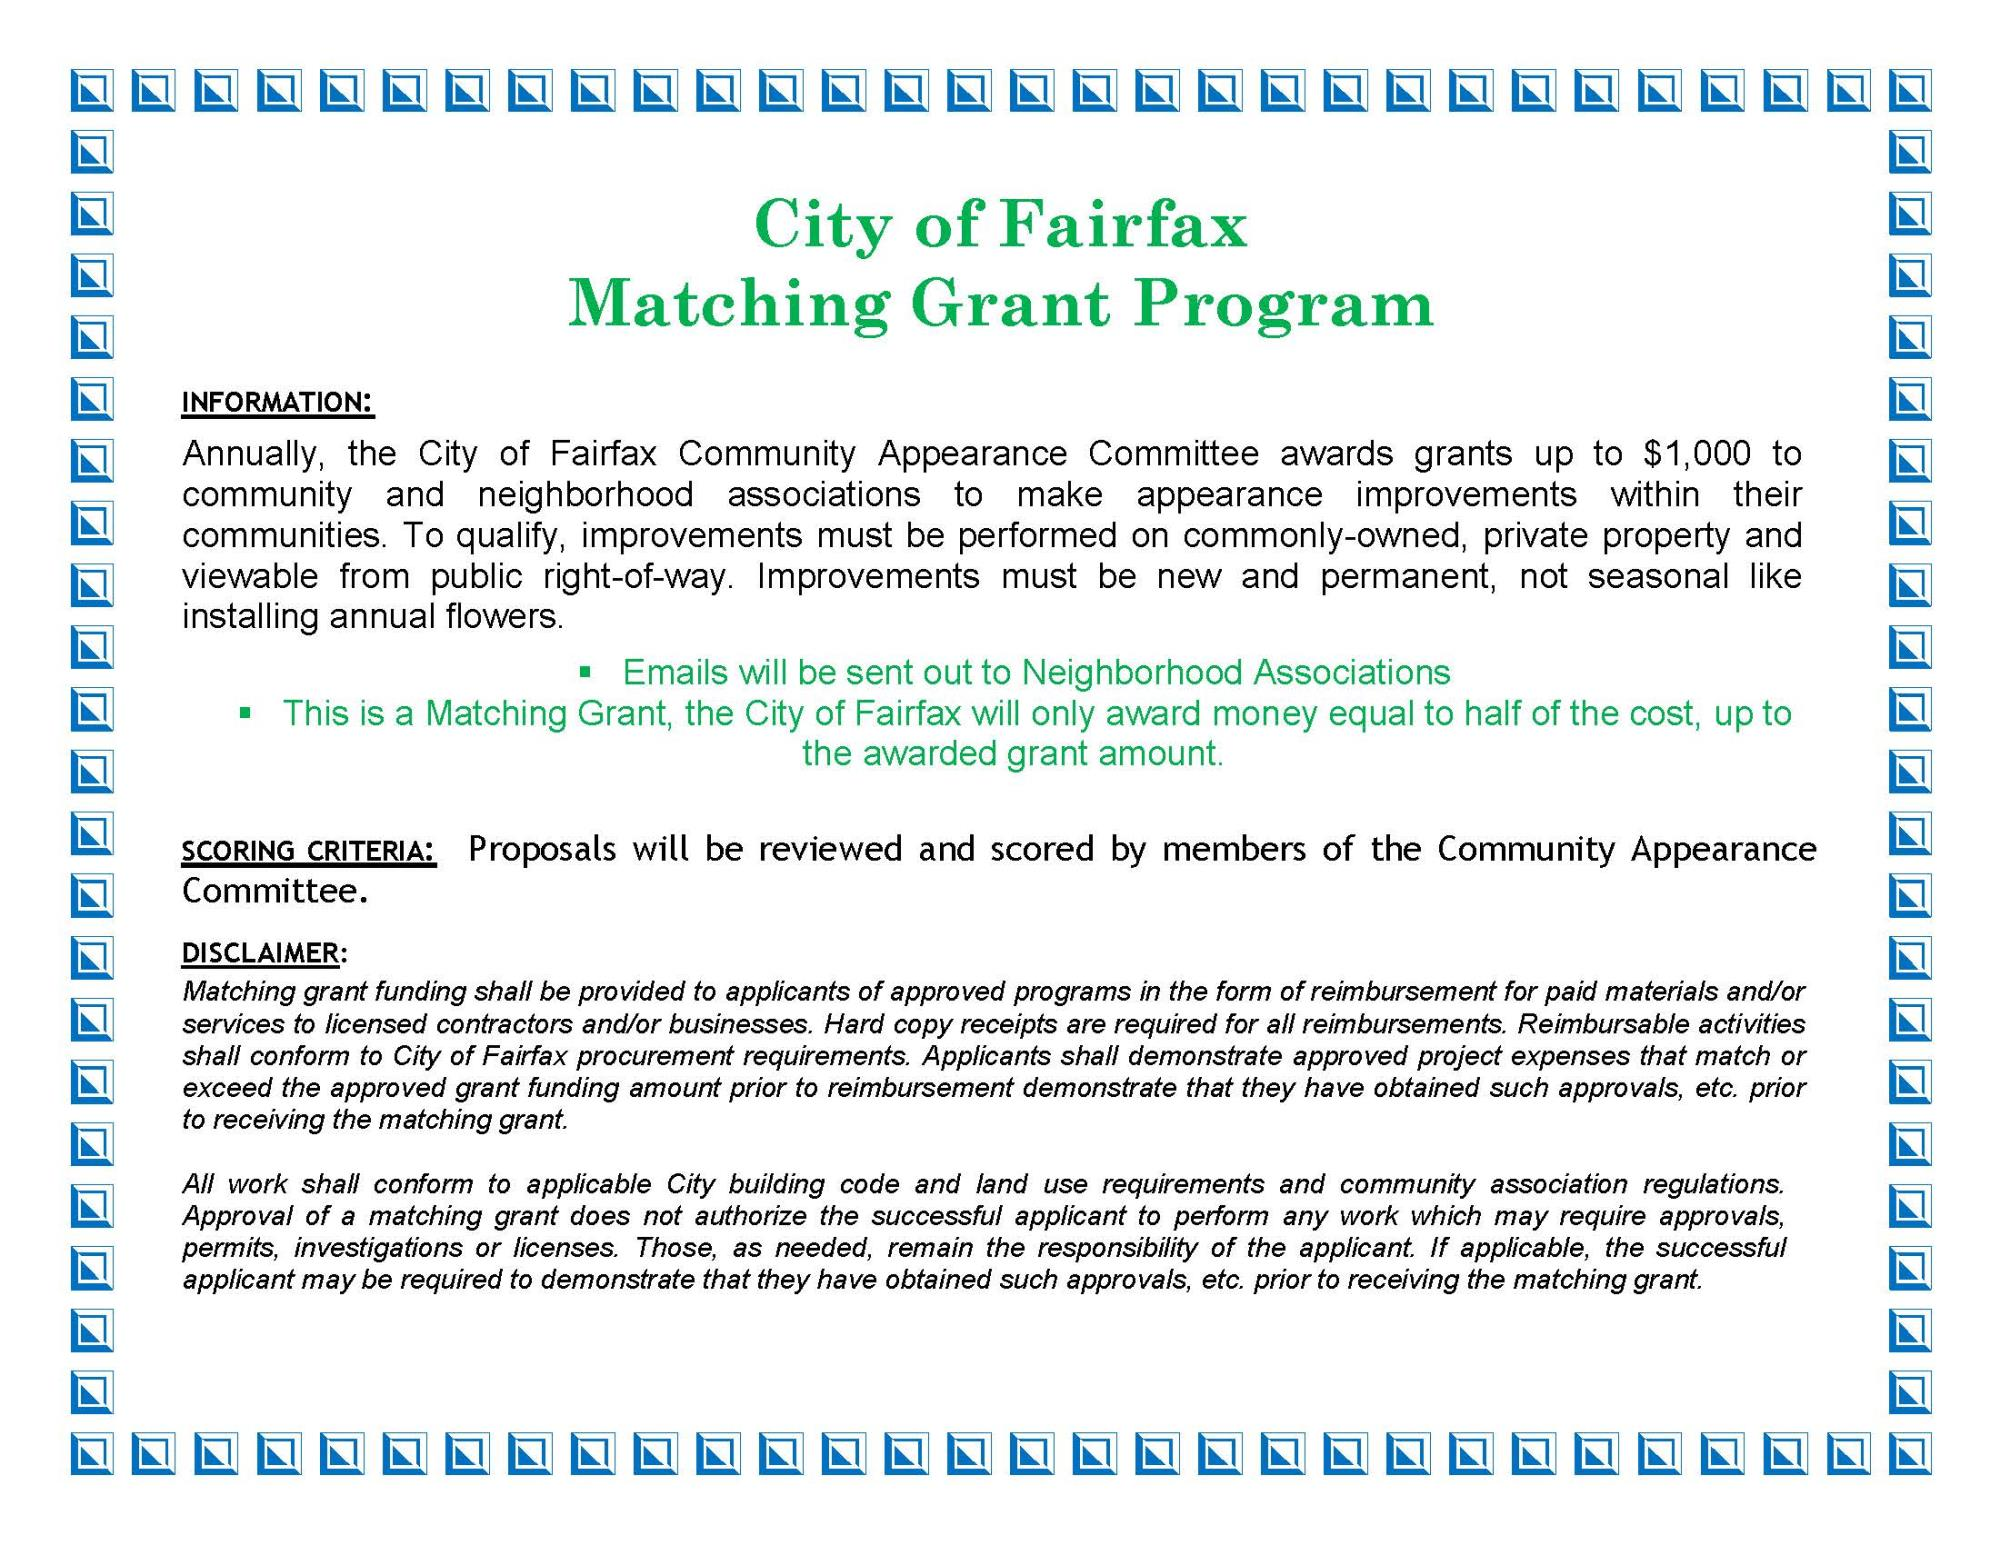 Matching Grant Program City of Fairfax Residence Ad